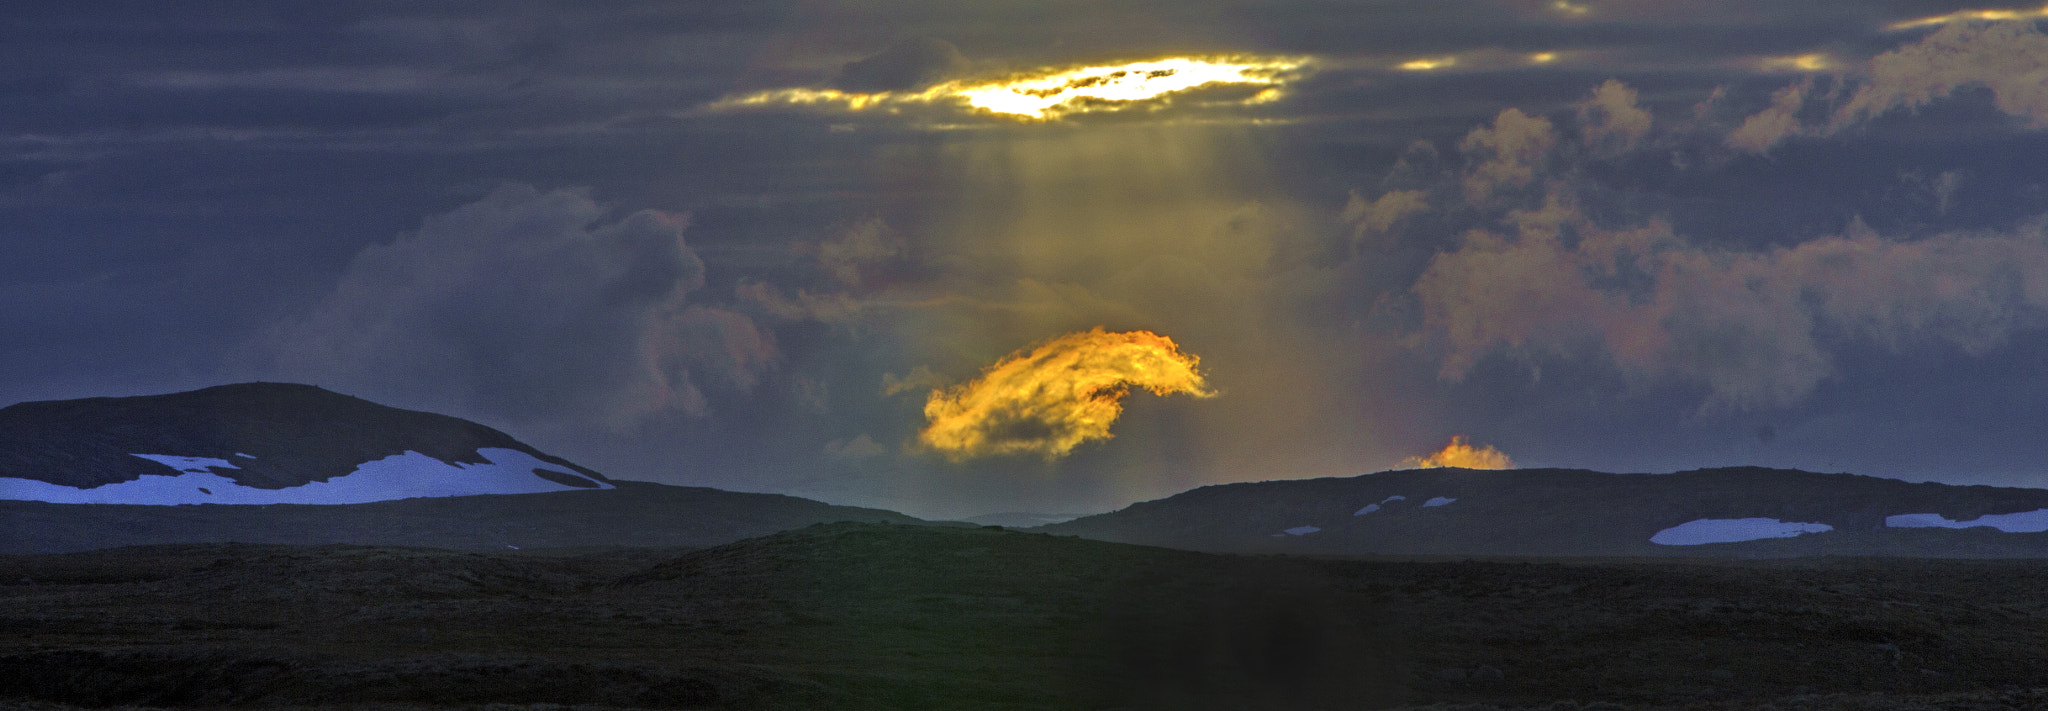 Photograph Burning cloud by Terje Thorsen on 500px